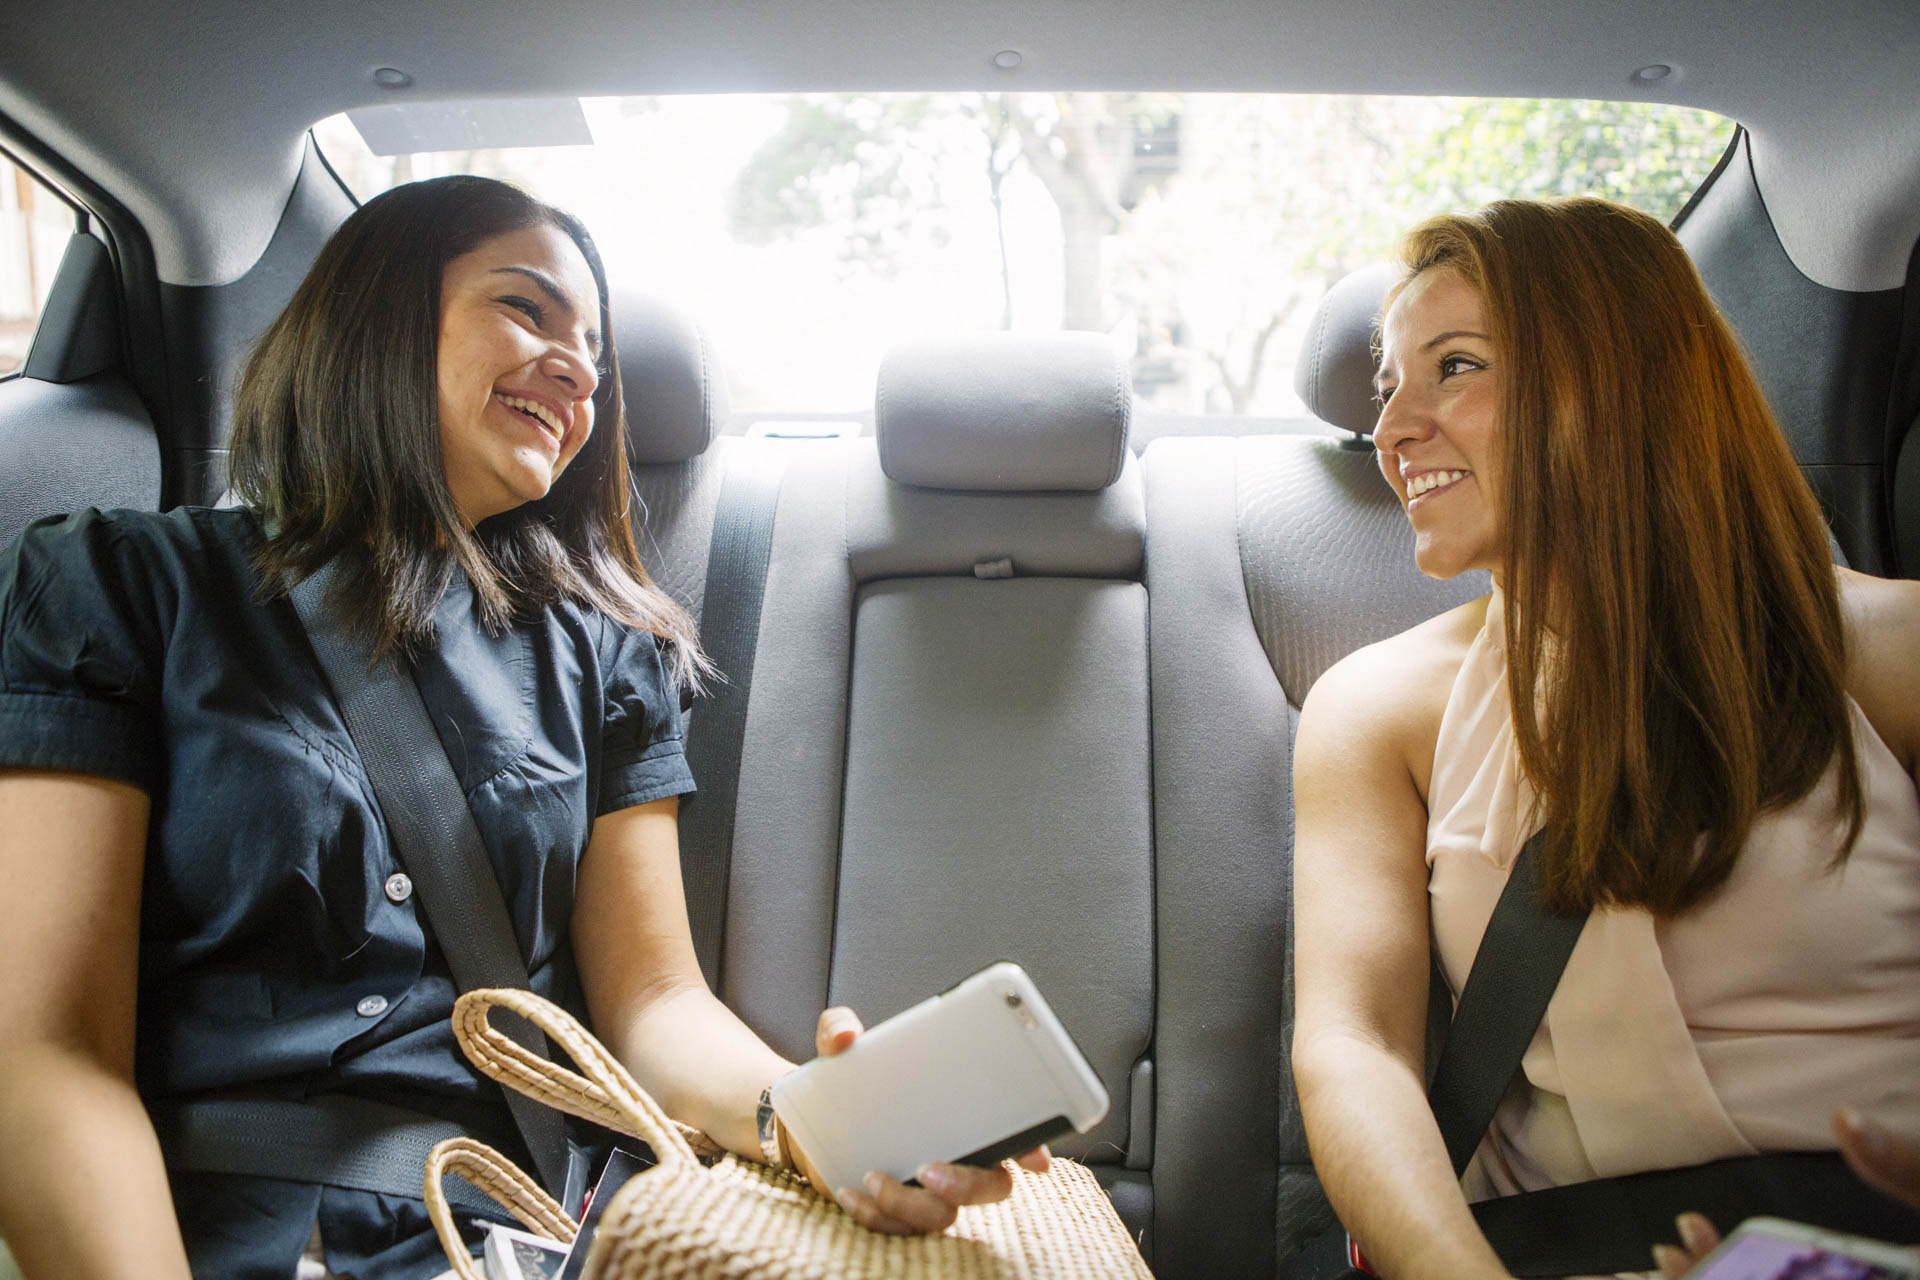 Uber Express Pool is like a minibus with cheaper rides